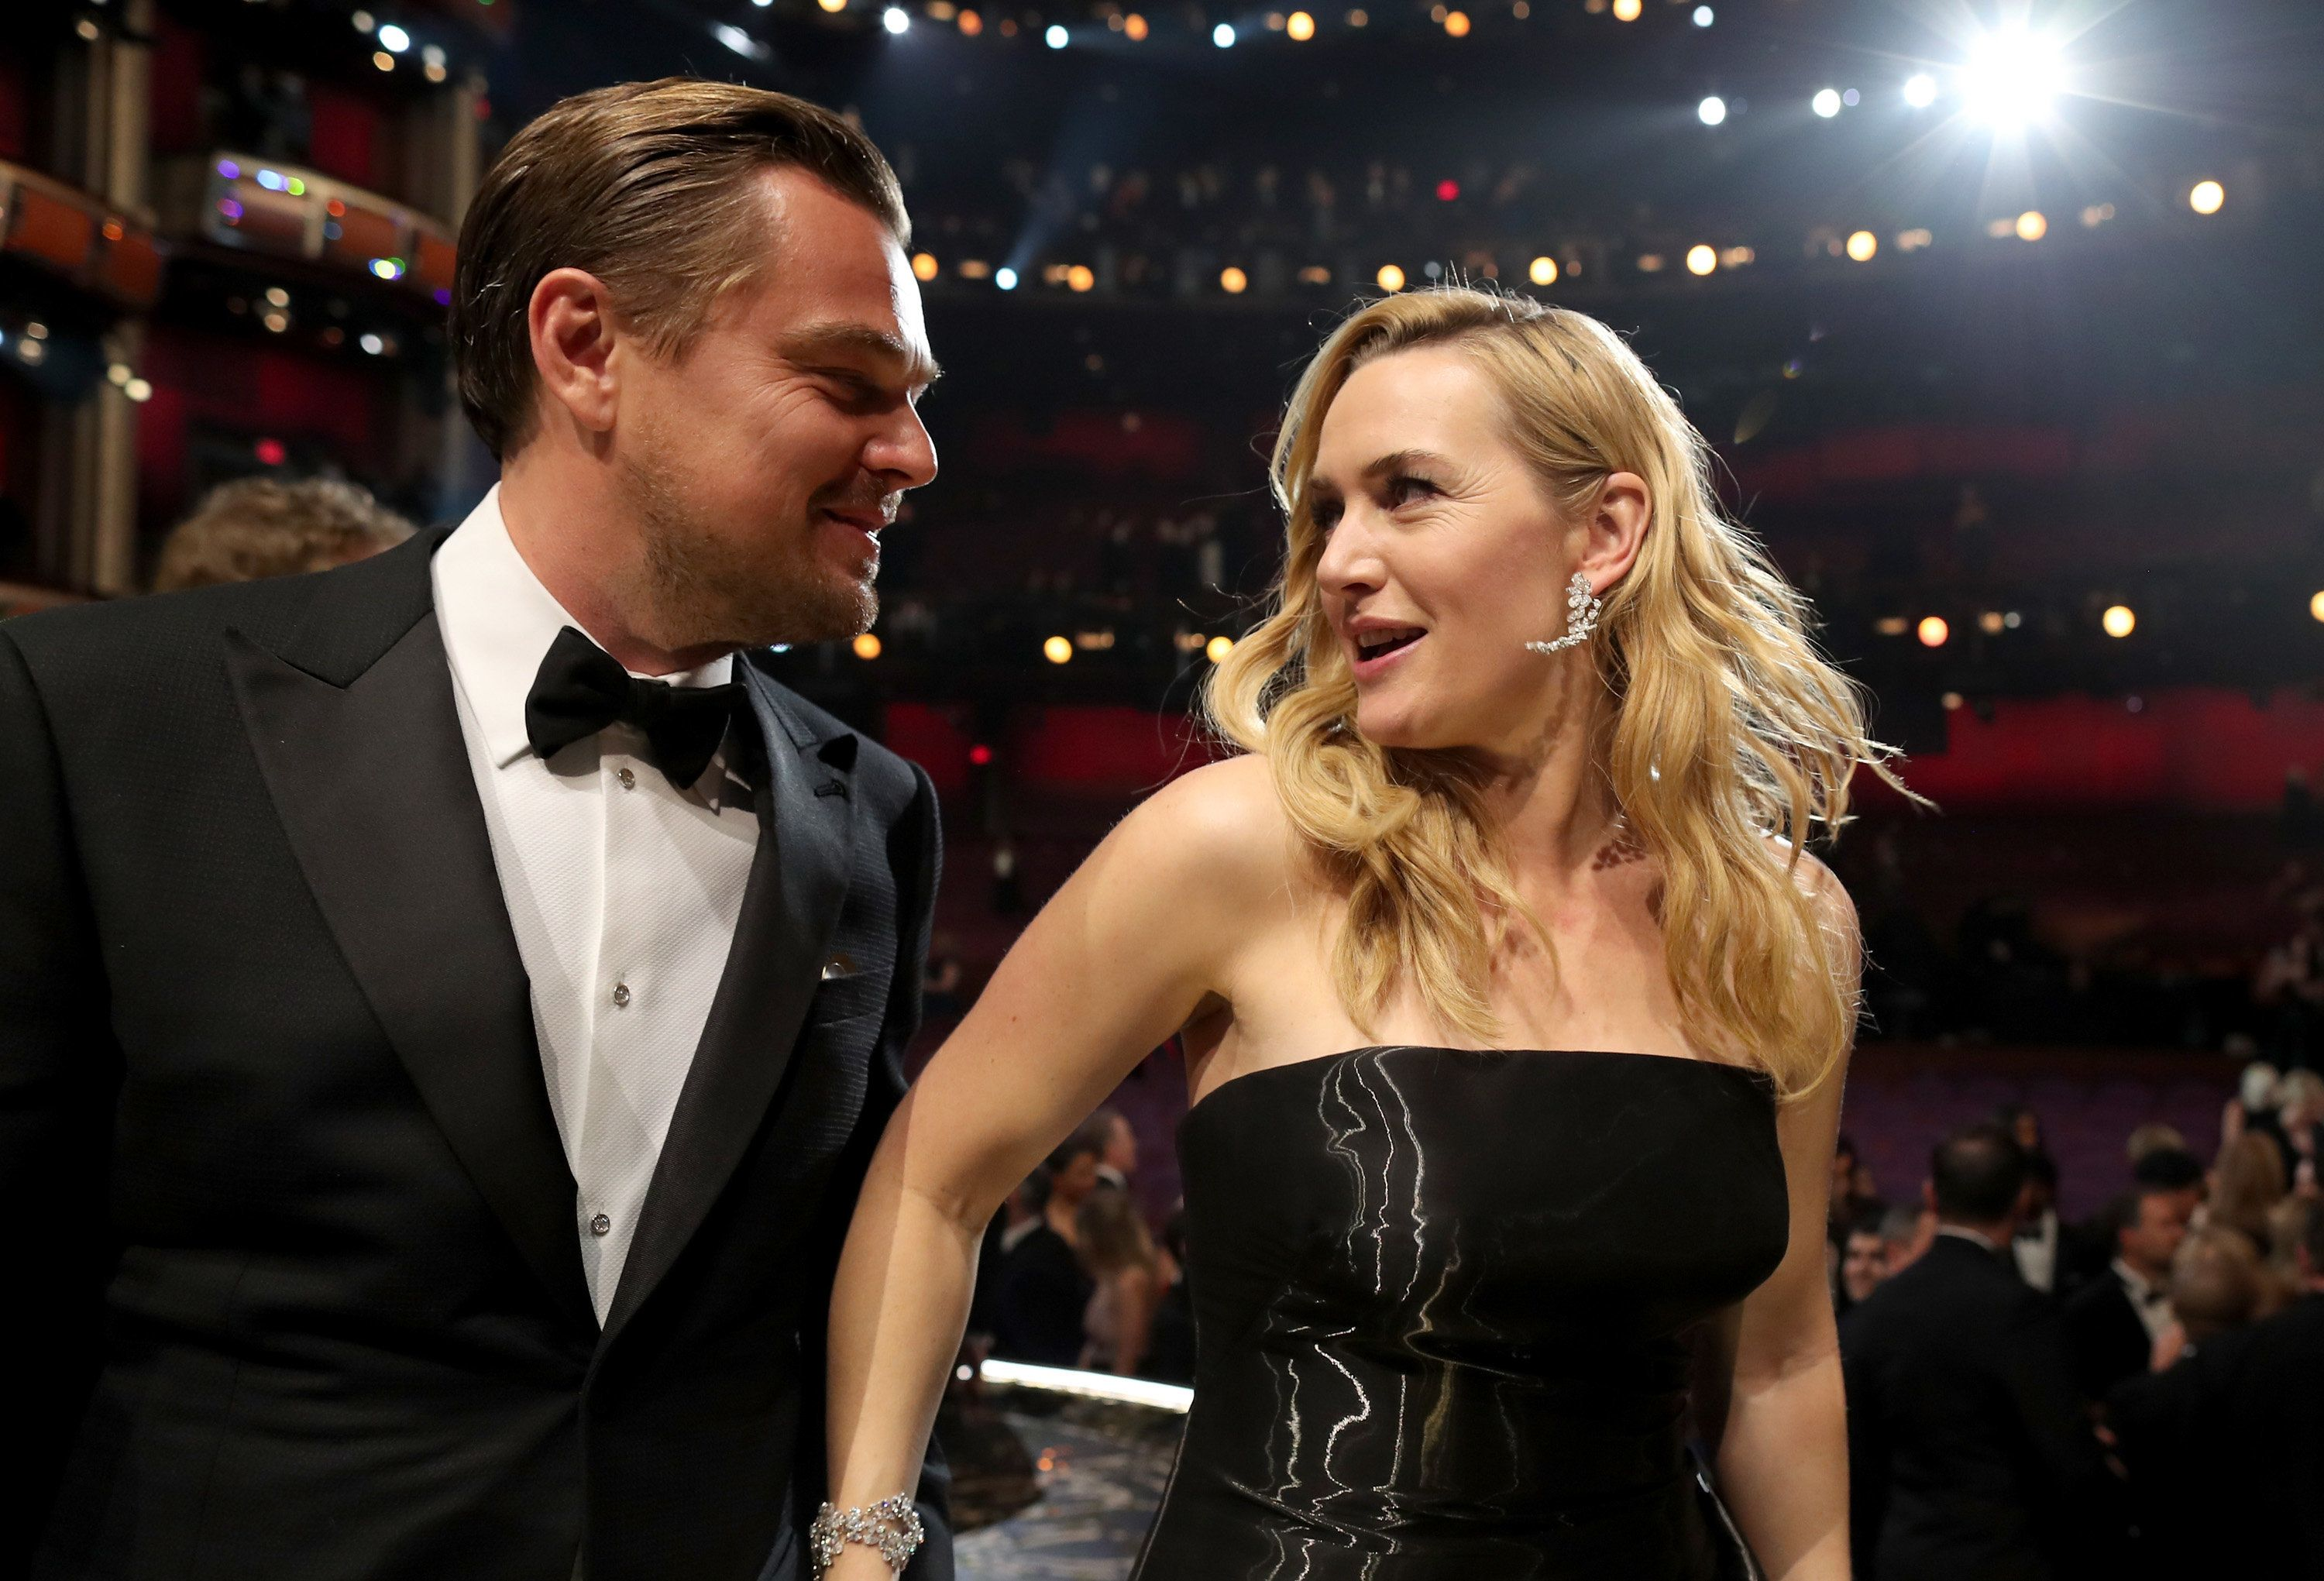 HOLLYWOOD, CA - FEBRUARY 28:  Actor Leonardo DiCaprio (L) and Kate Winslet attend the 88th Annual Academy Awards at Dolby Theatre on February 28, 2016 in Hollywood, California.  (Photo by Christopher Polk/Getty Images)